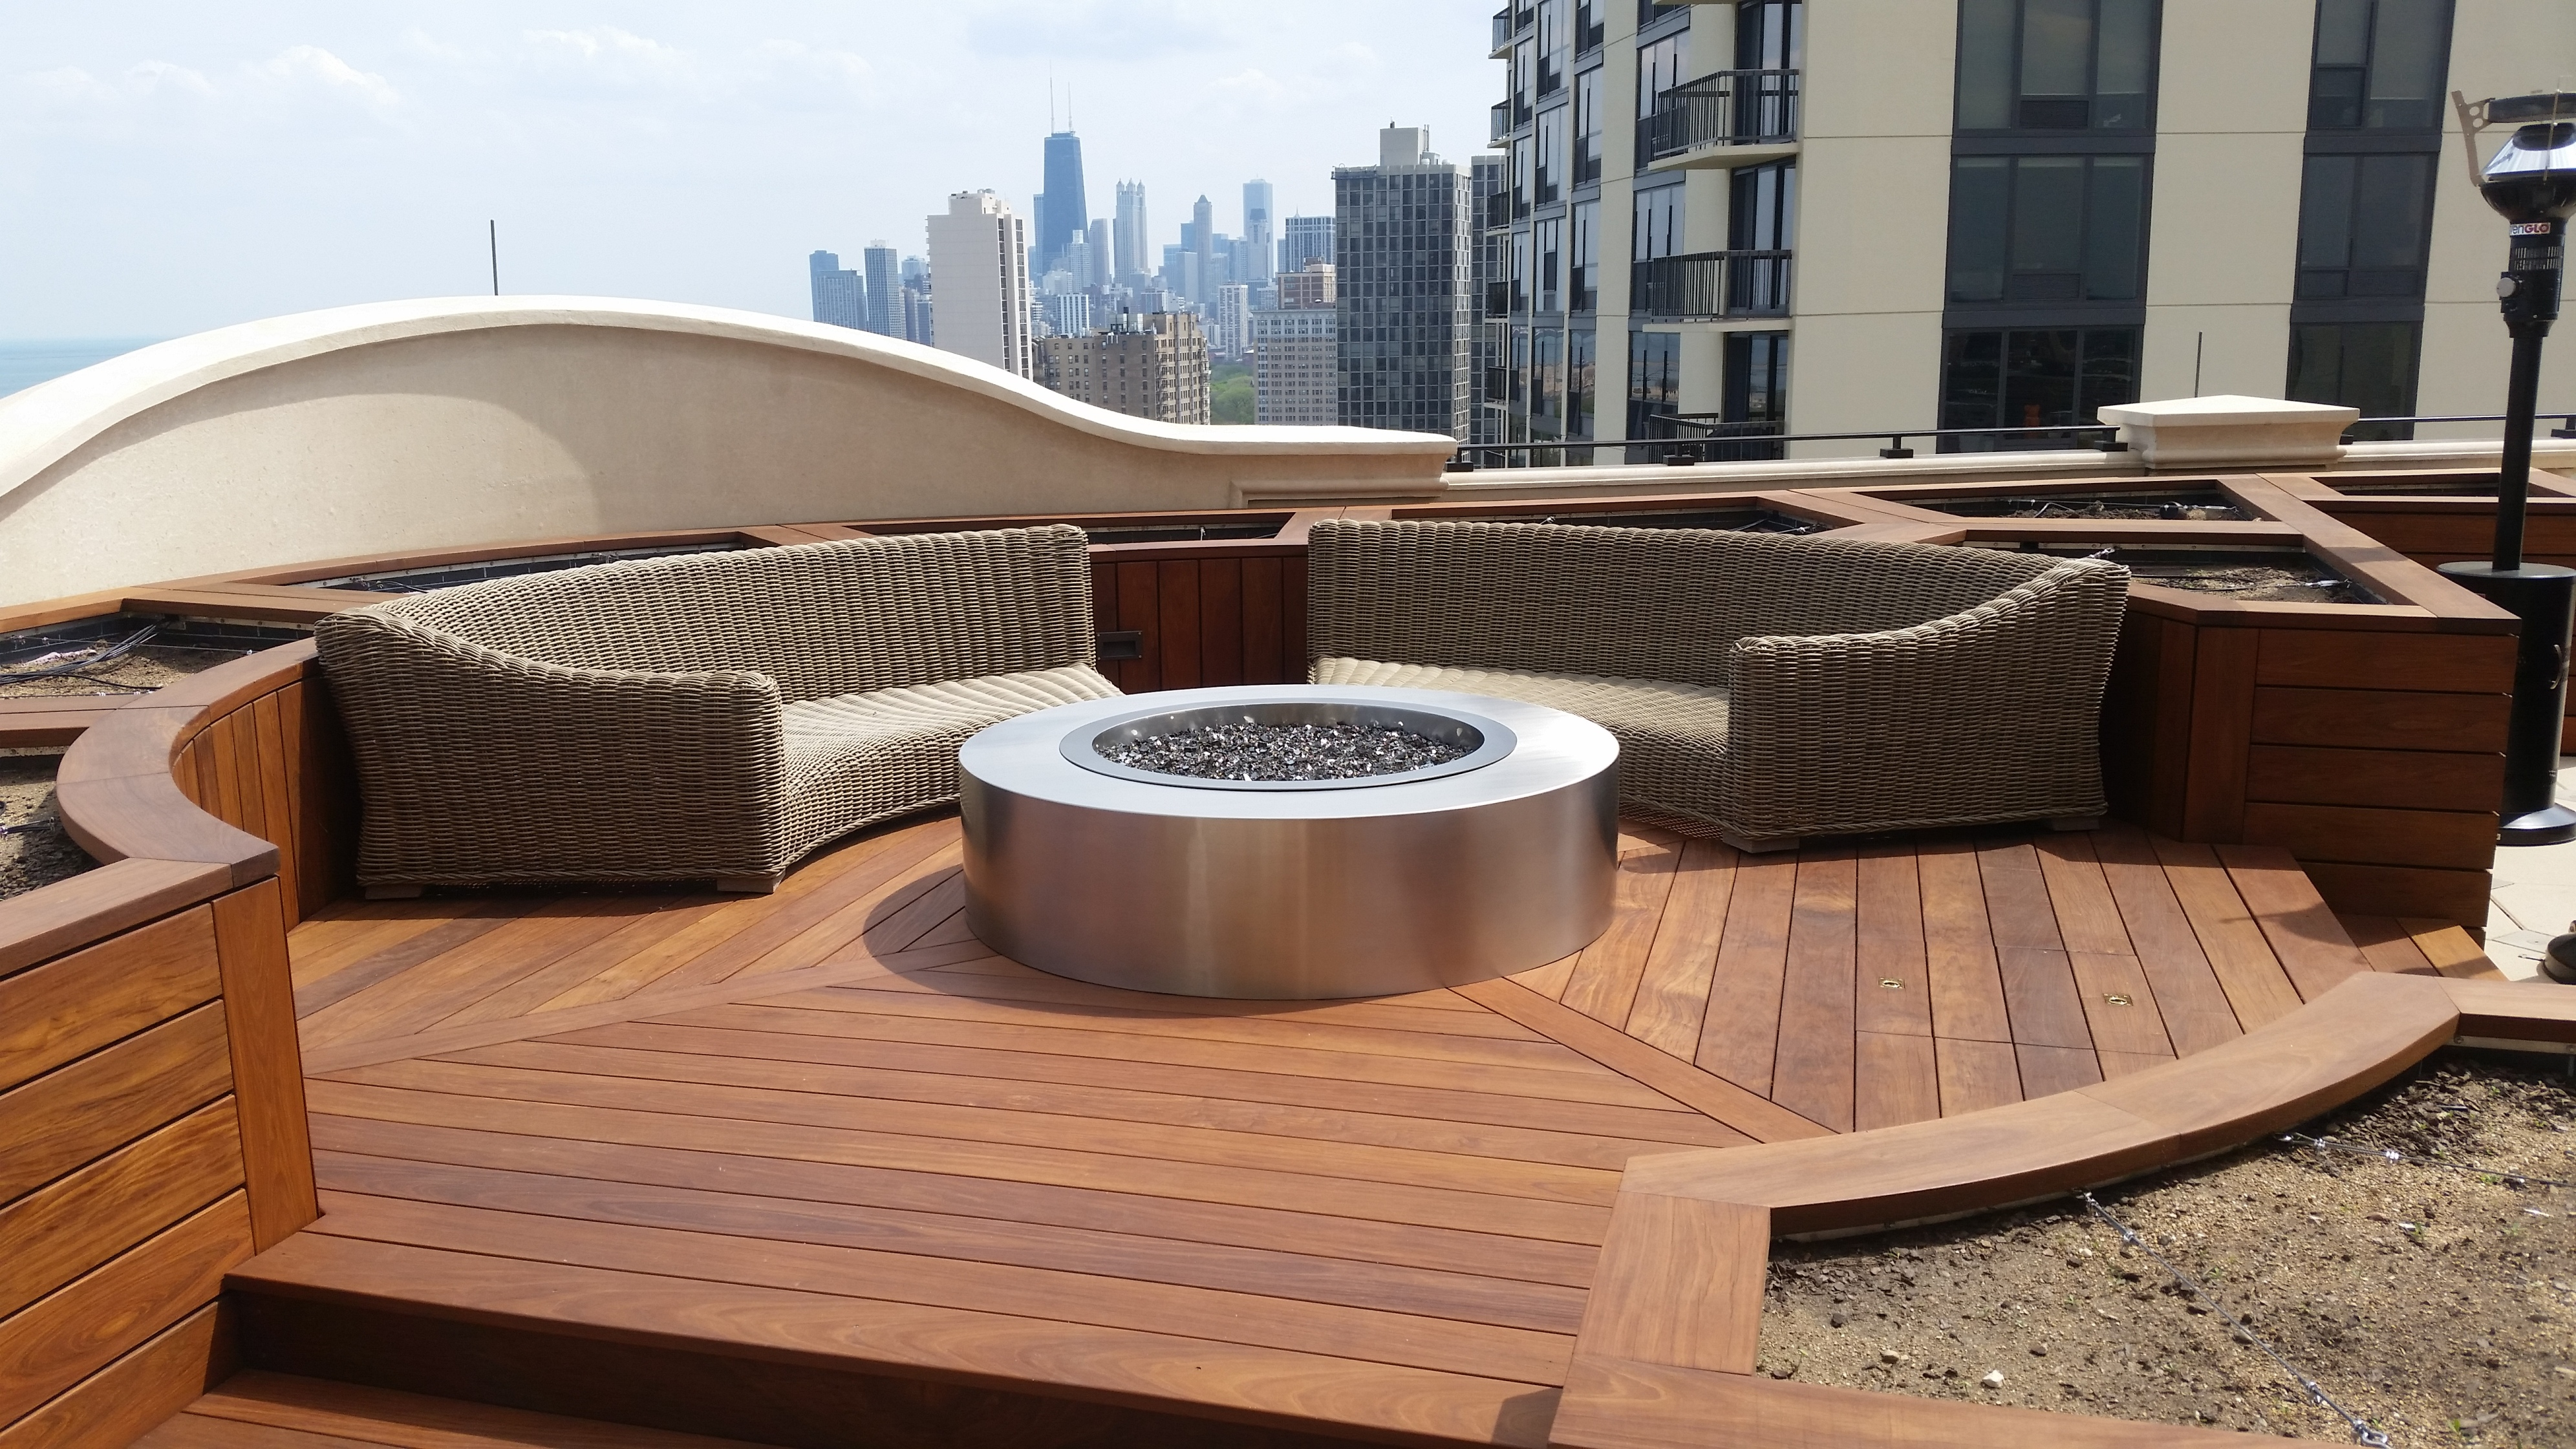 Stainless steel fire pit